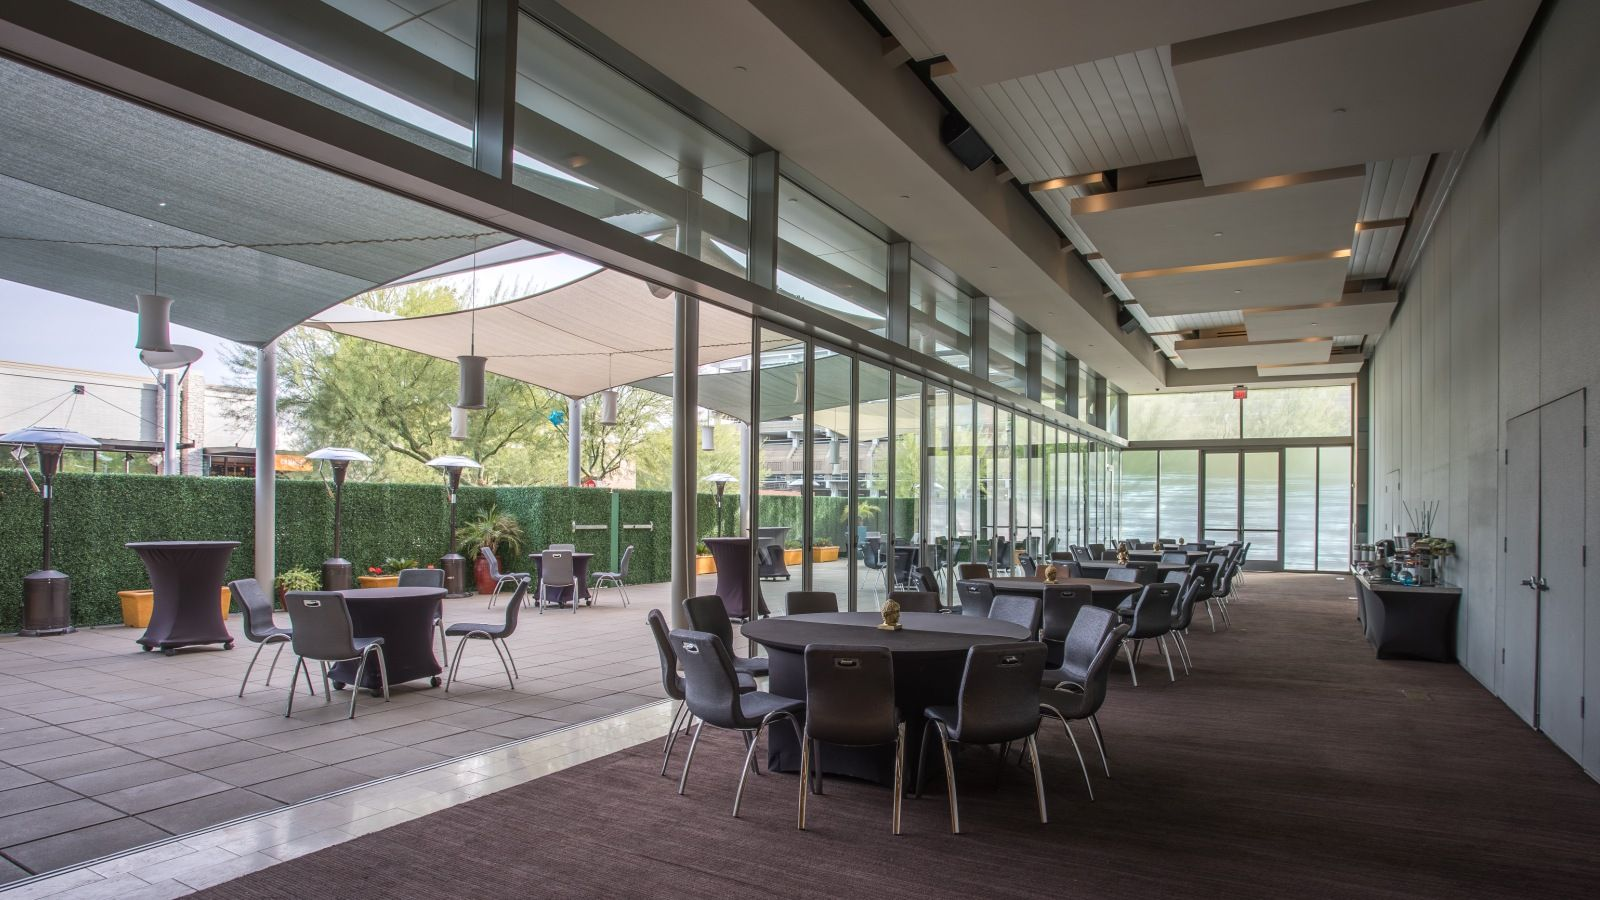 Scottsdale Hotel Meeting Rooms - Outdoor Spaces